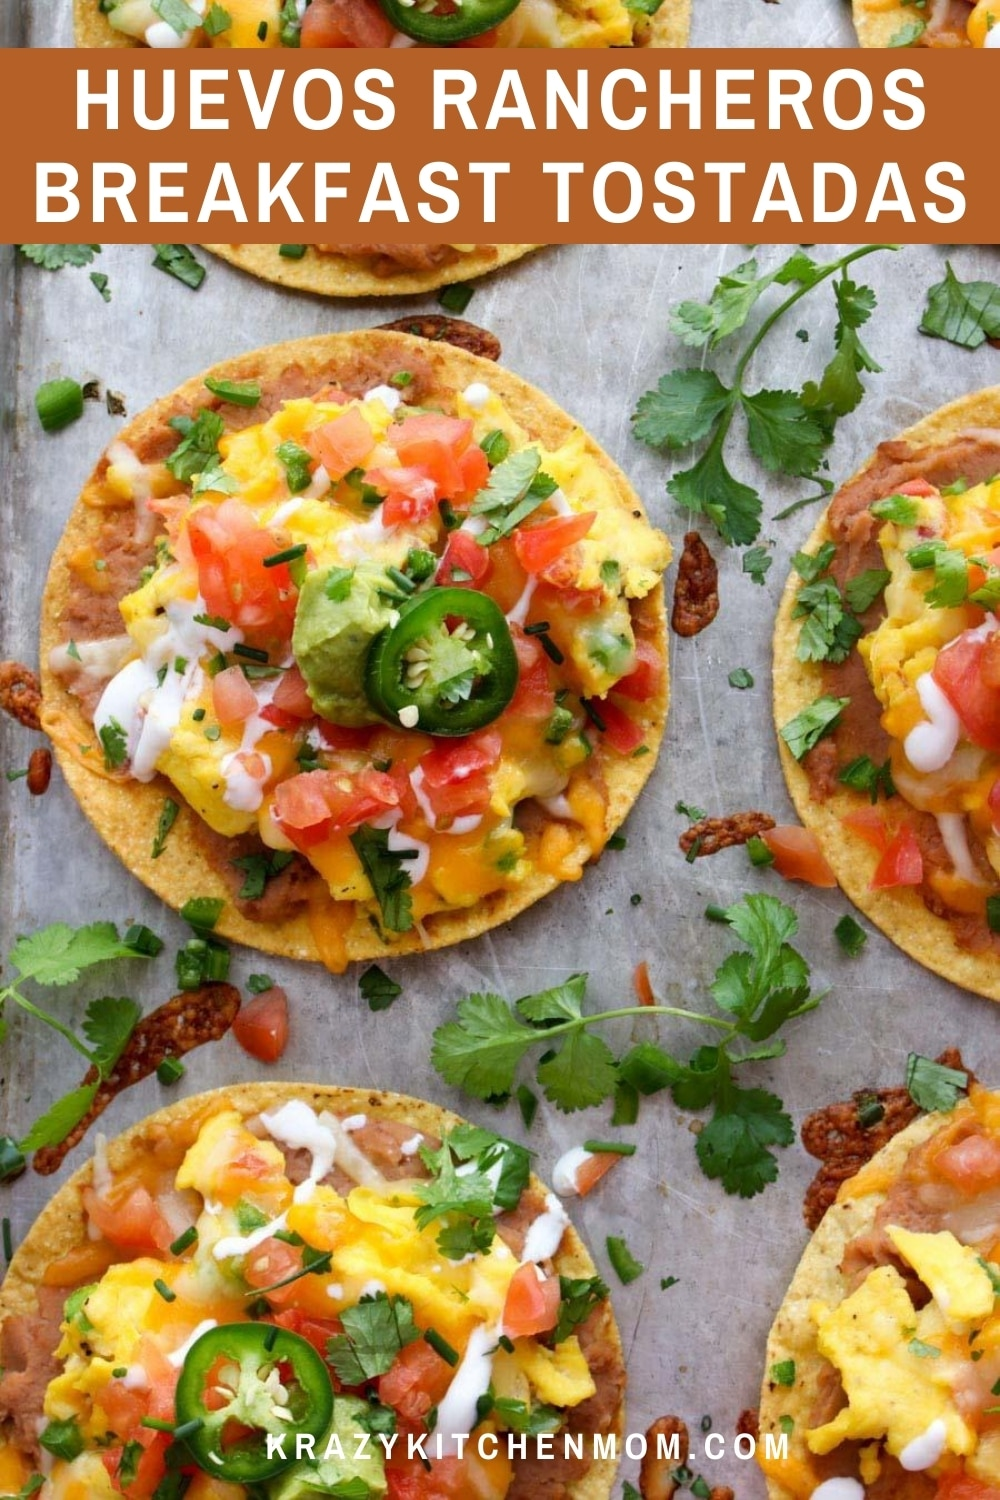 Looking for a way to mix it up for breakfast, brunch, and even dinner? Tostadas are a great way to add a ton of flavor and variety to your weekly menu. Serve these with a side of fresh diced fruit like watermelon or pineapple for a complete meal. via @krazykitchenmom